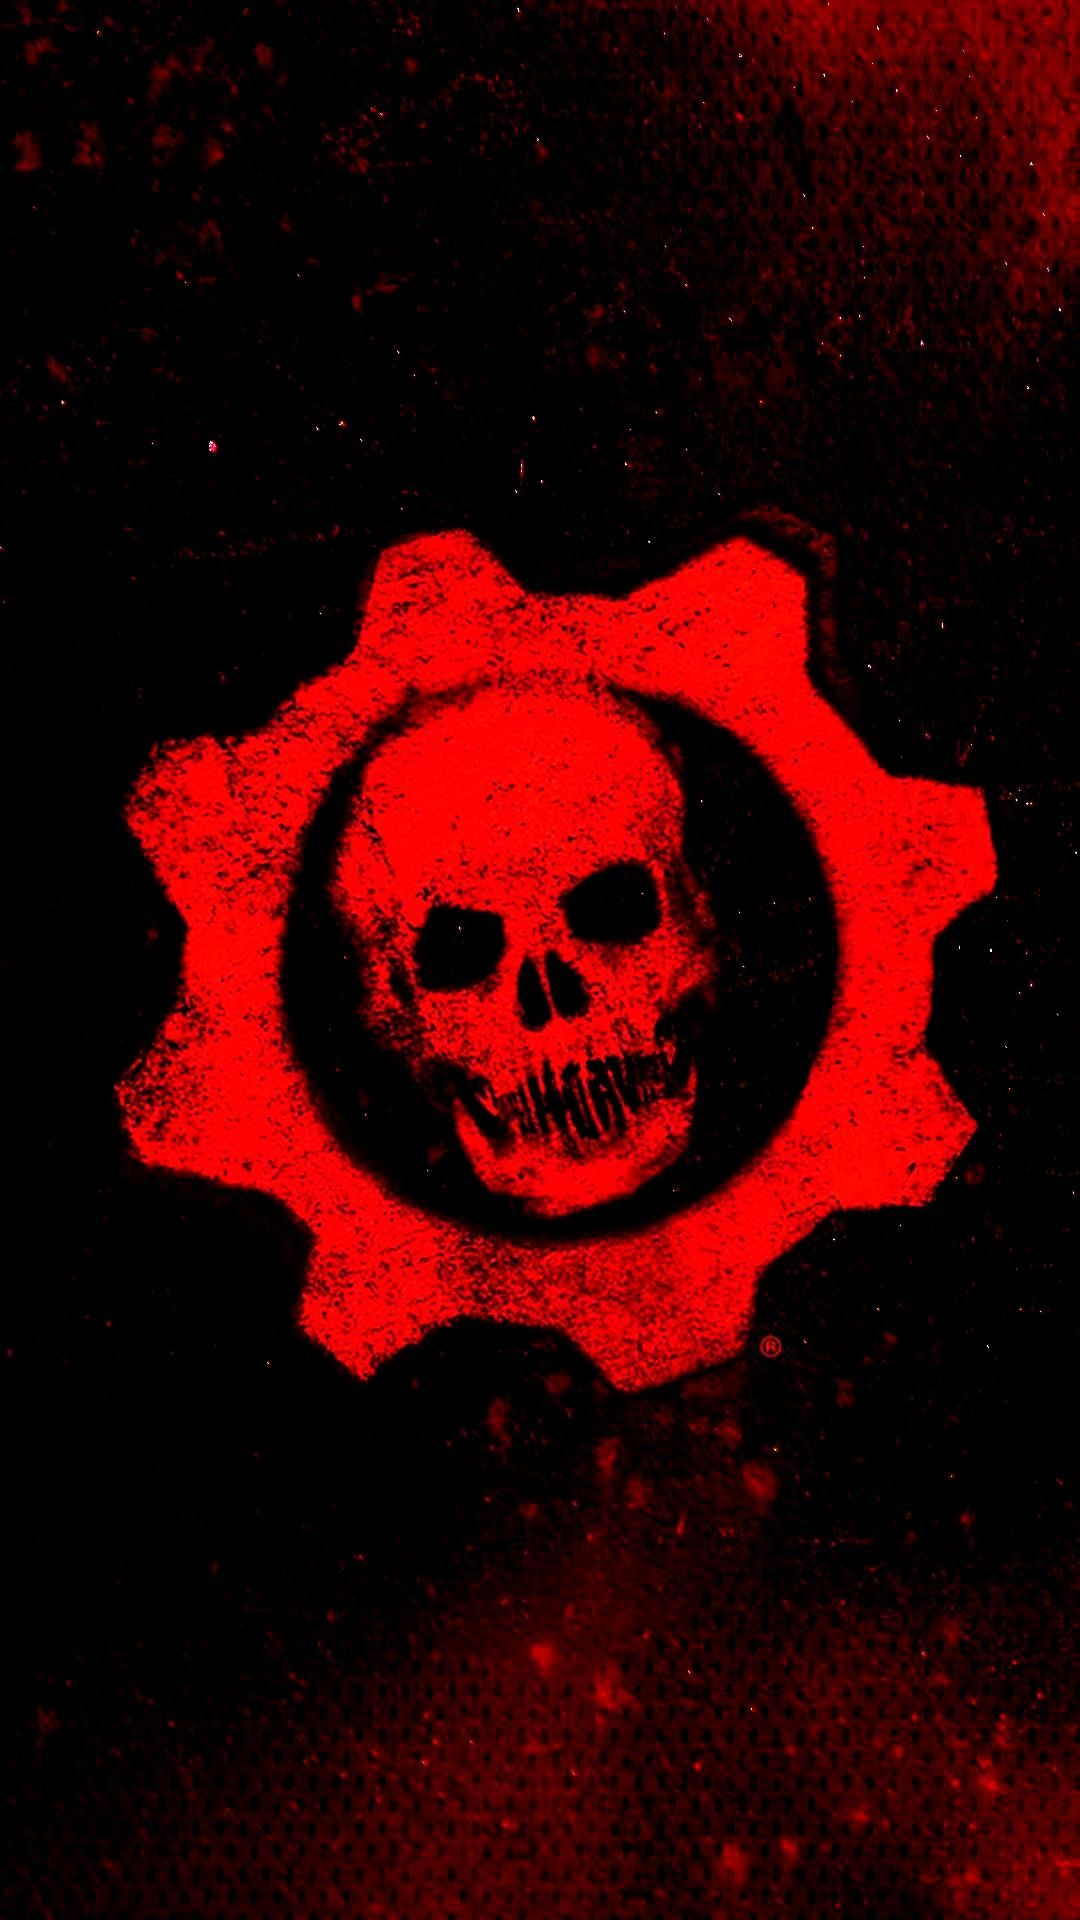 Wallpaper Android Gears Phone Your War For Of Hd 4 Gears Of War 4 Hd Wallpaper For Your Android Phonegears O Gears Of War Iphone Wallpaper War Tattoo